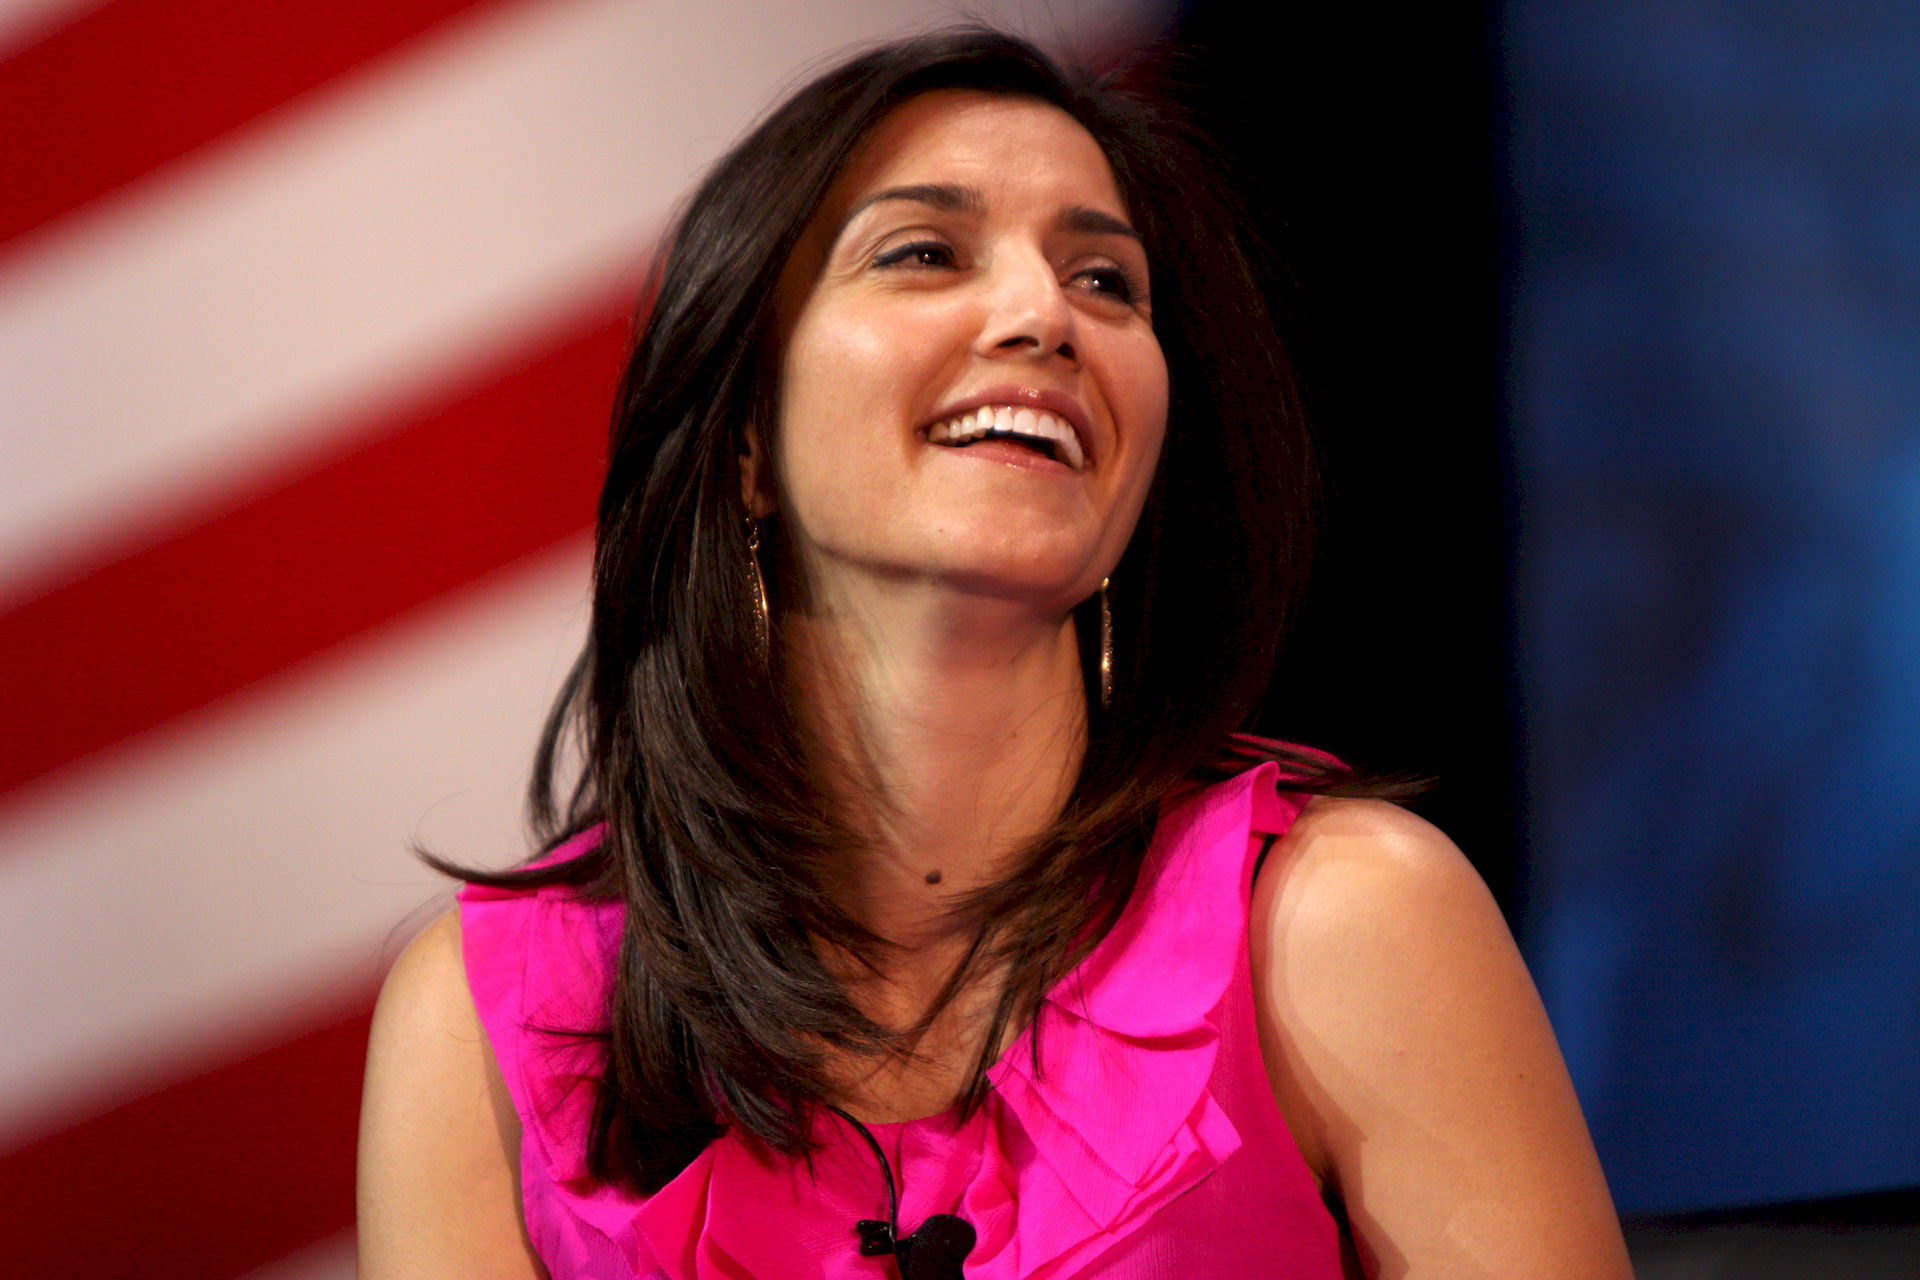 Photo of Rachel Campos-Duffy: American television personality